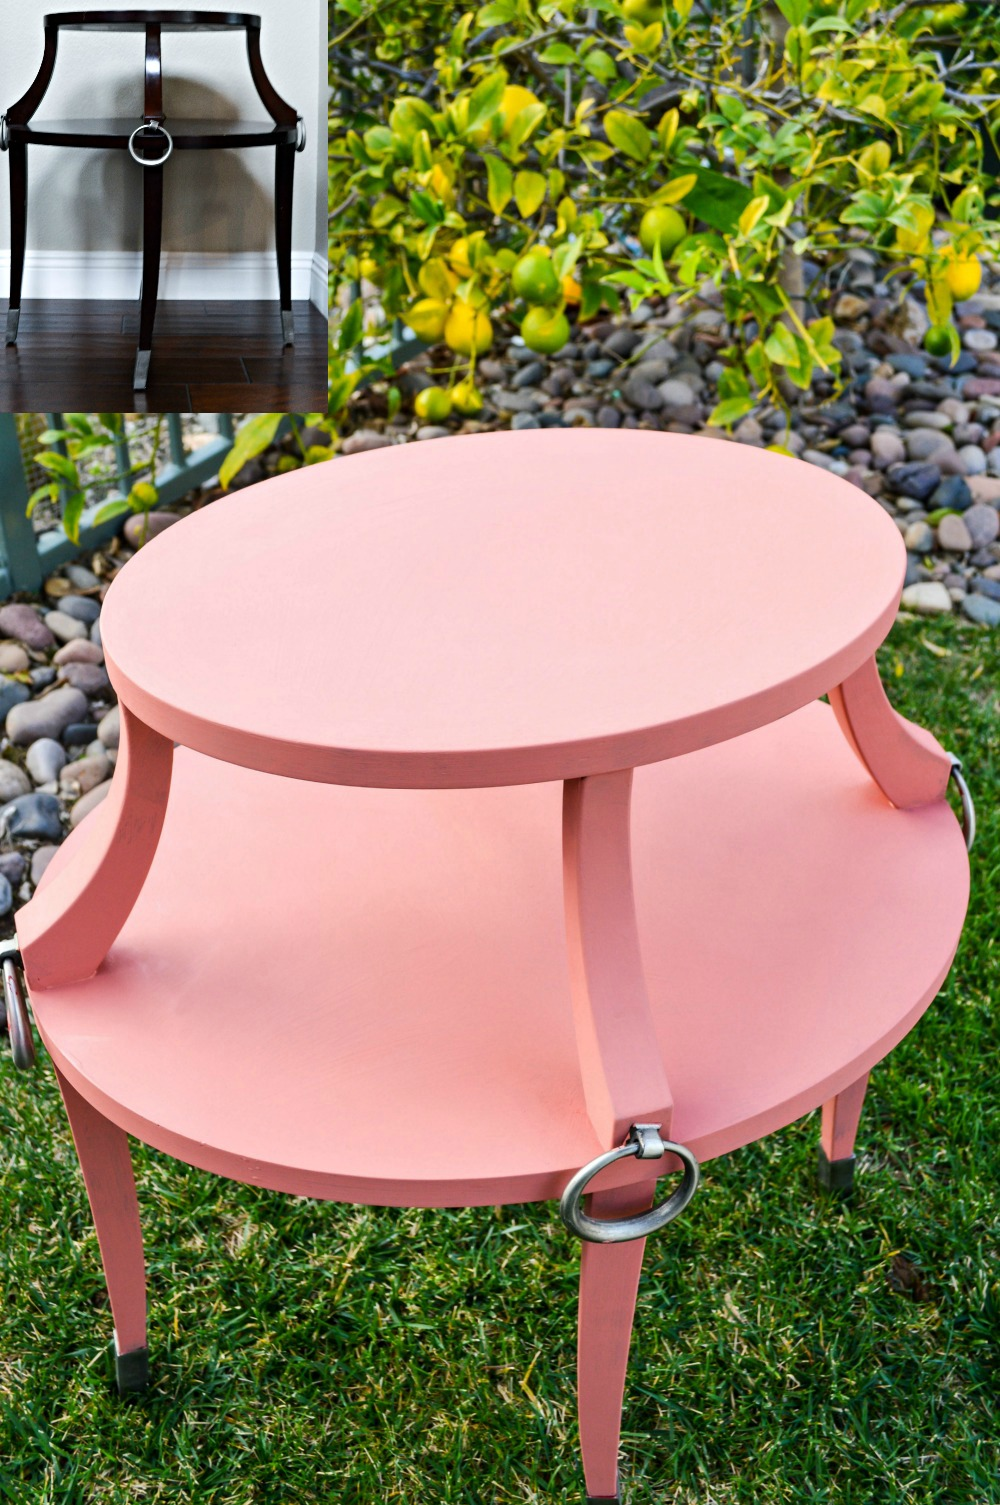 dont-get-rid-of-those-old-side-tables-paint-them-my-uncommon-slice-of-suburbia